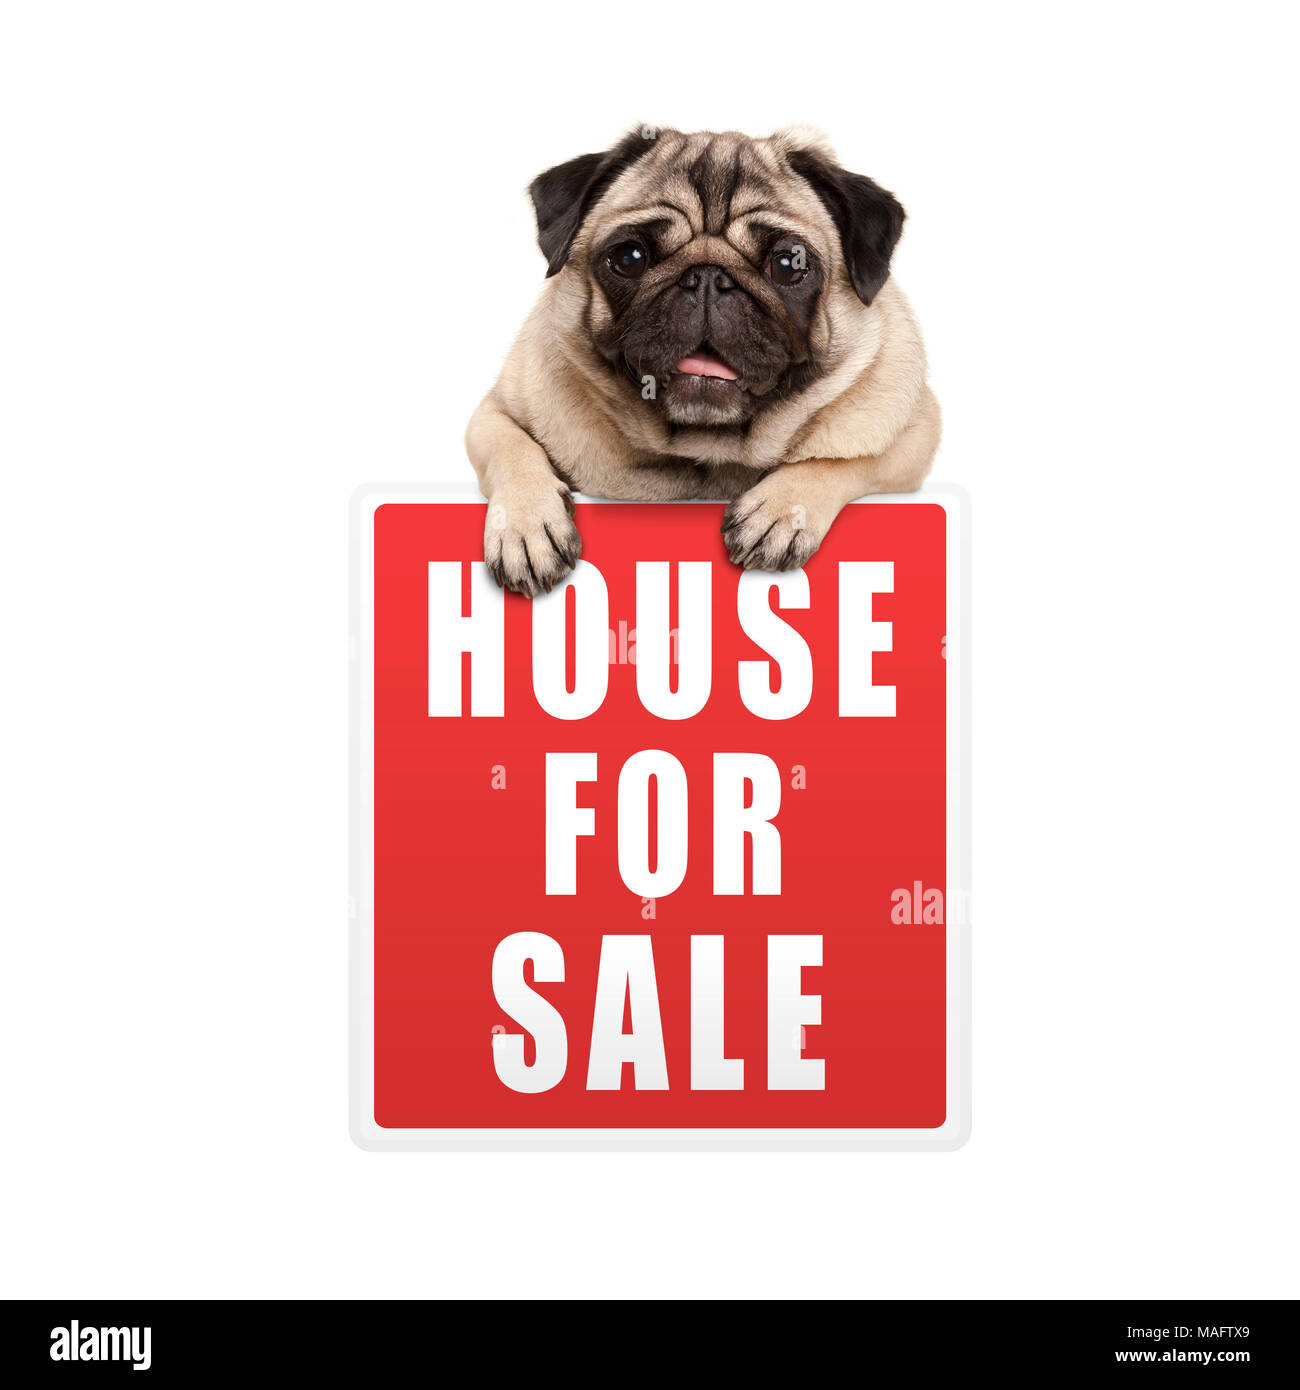 cute pug puppy dog hanging with paws on red house for sale sign, isolated on white backgroundStock Photo